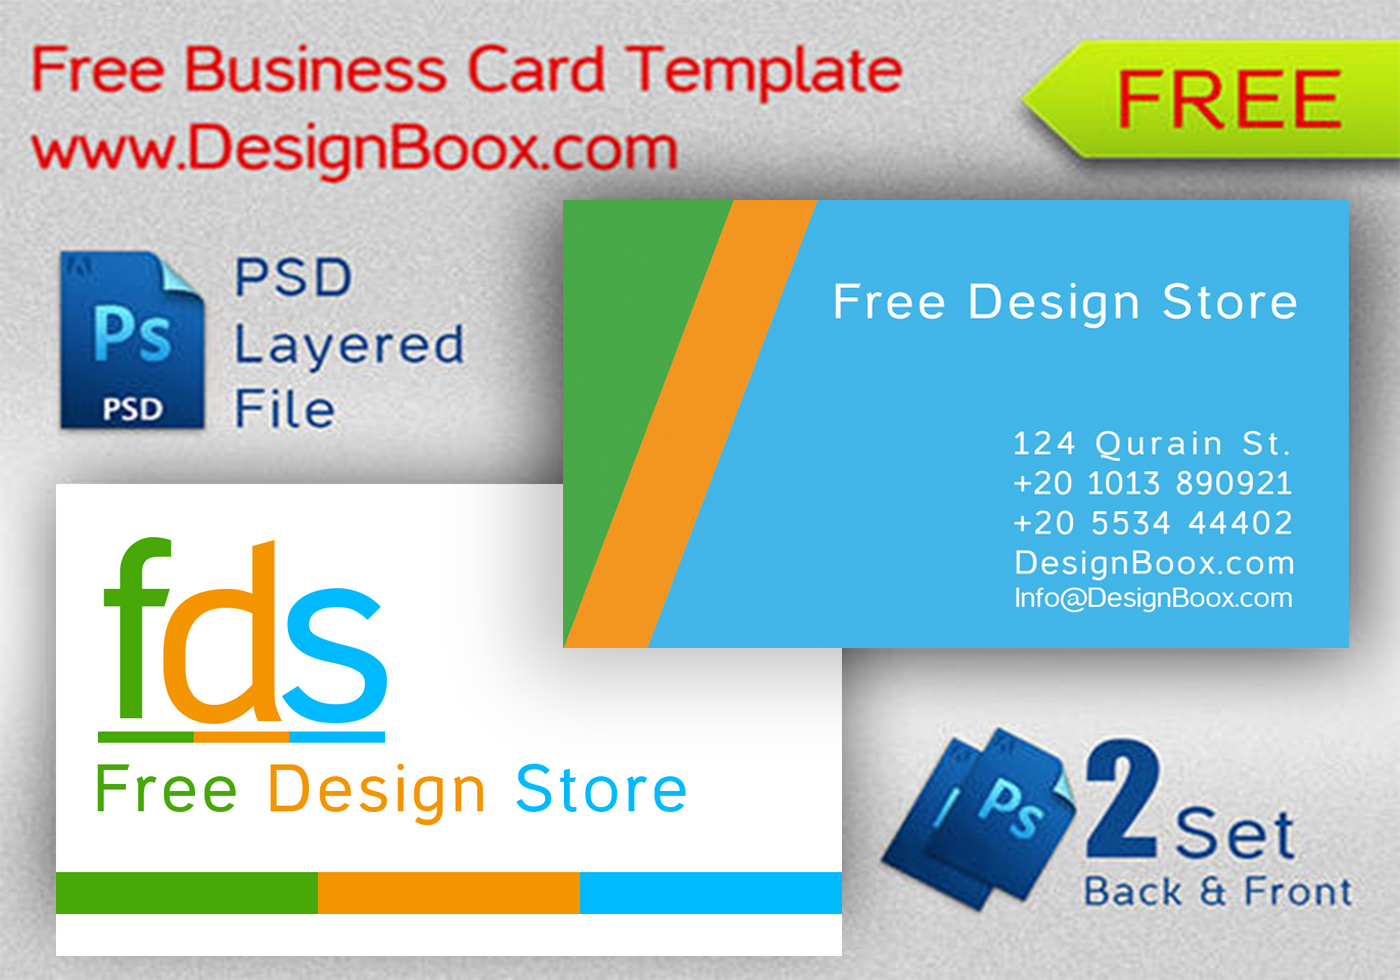 Business card template free photoshop psds at brusheezy for Free business card template photoshop